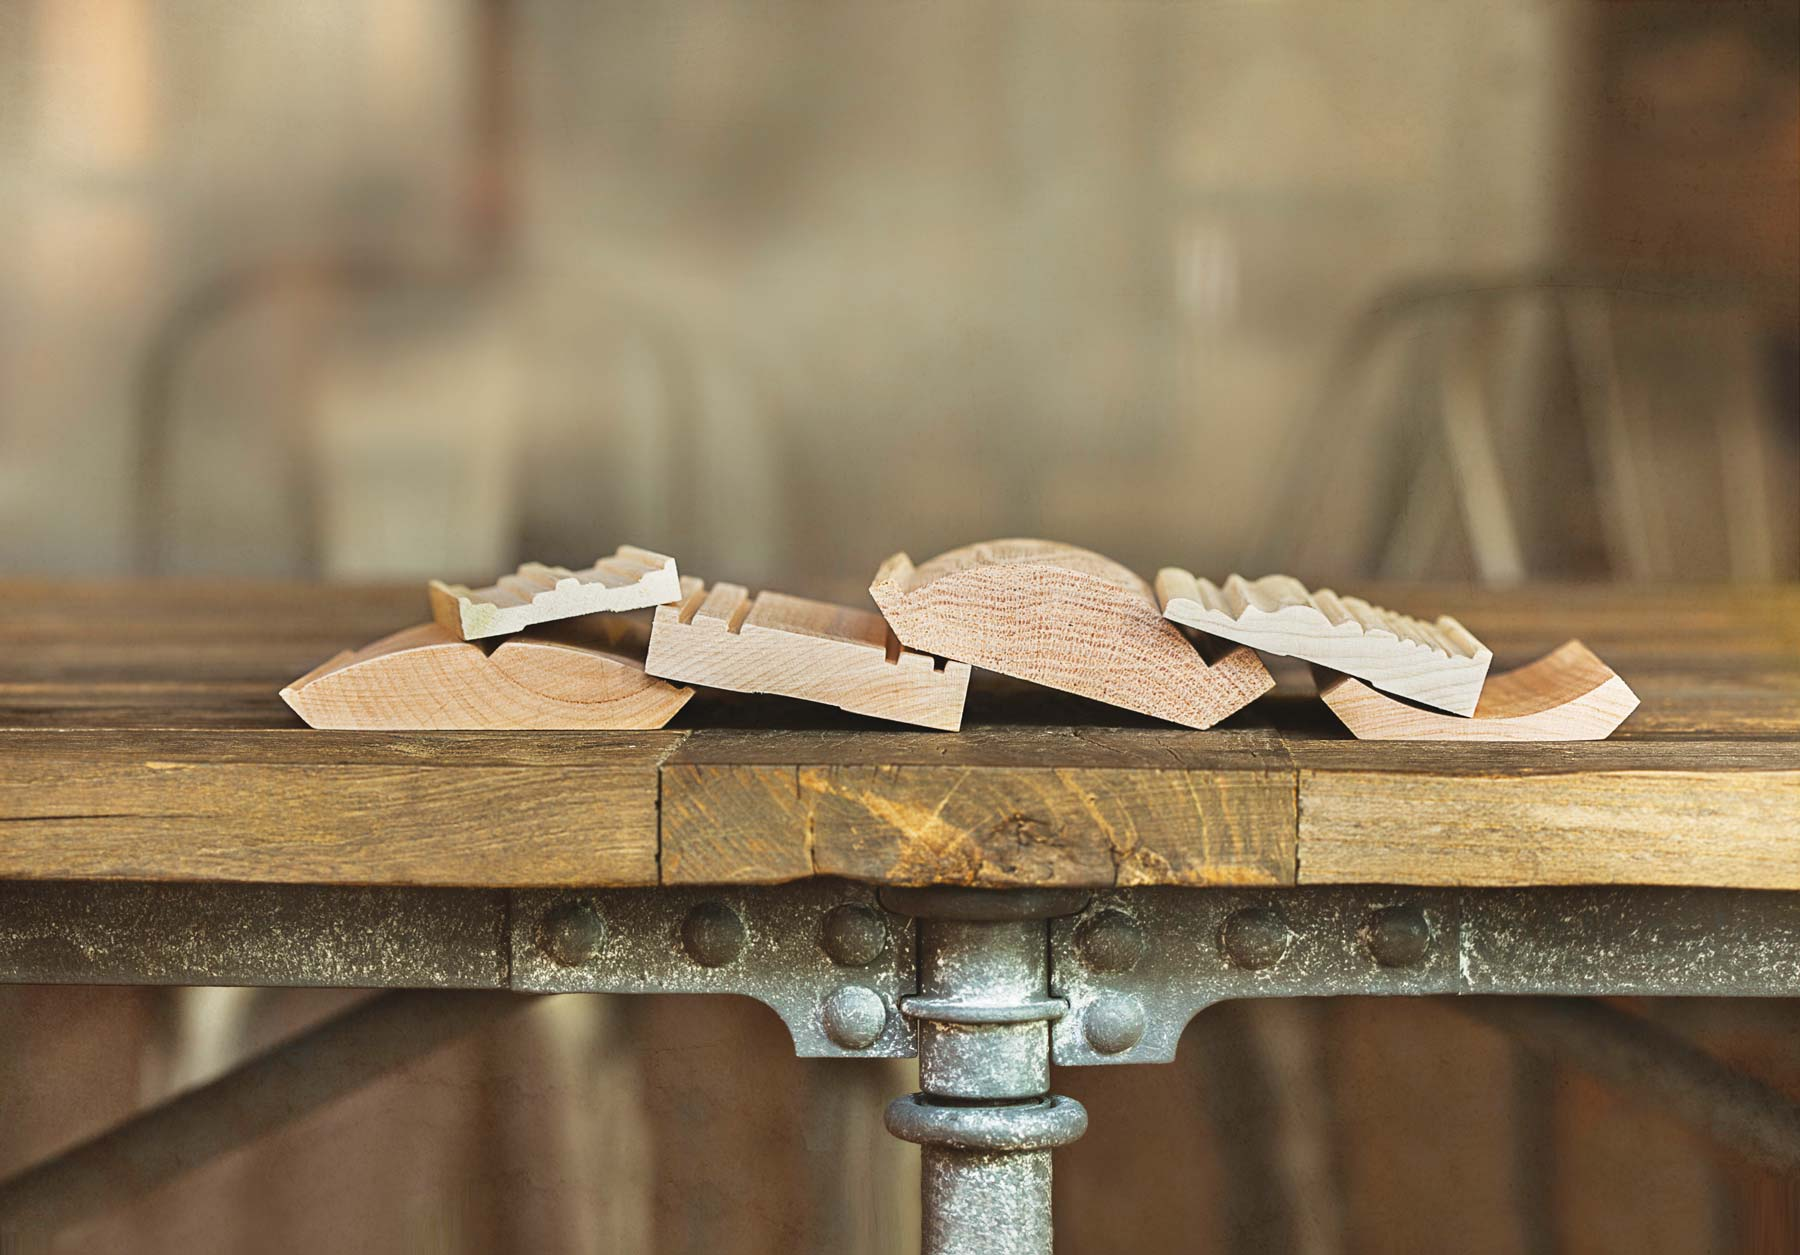 A stack of wood moulding samples on an industrial table